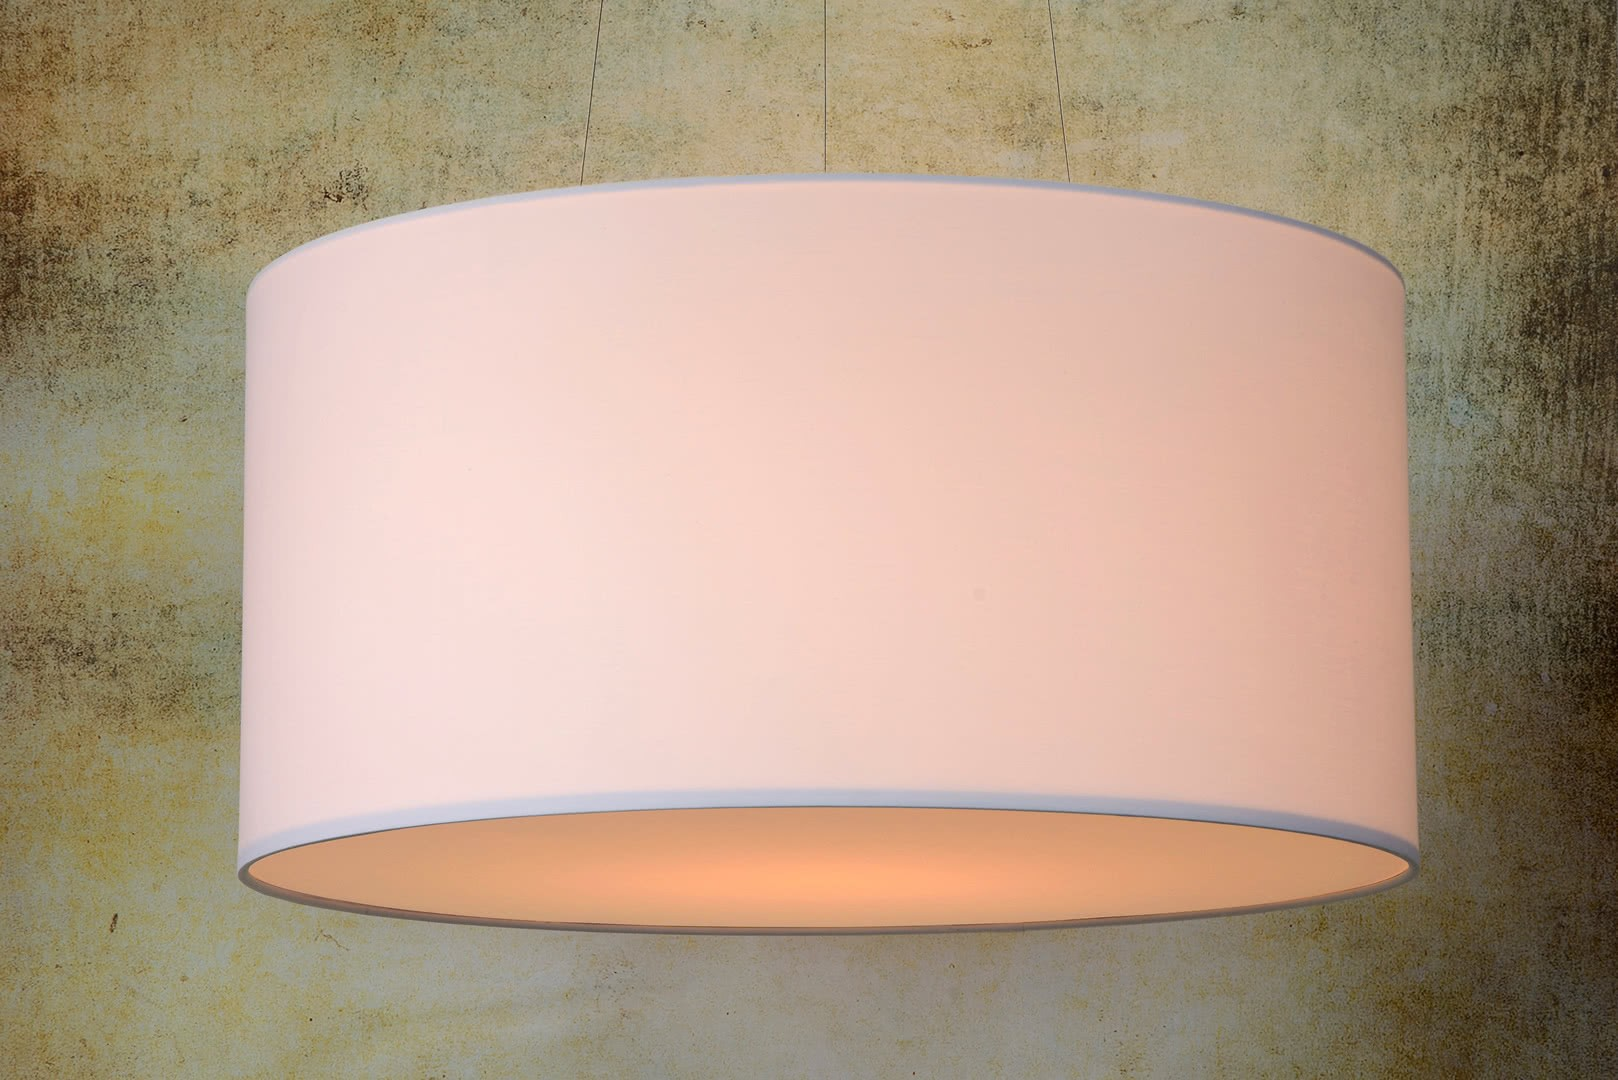 Suspension Luminaire Diamètre 60 Cm Suspension Contemporaine Coton Blanc Ø 60 Cm Carolane